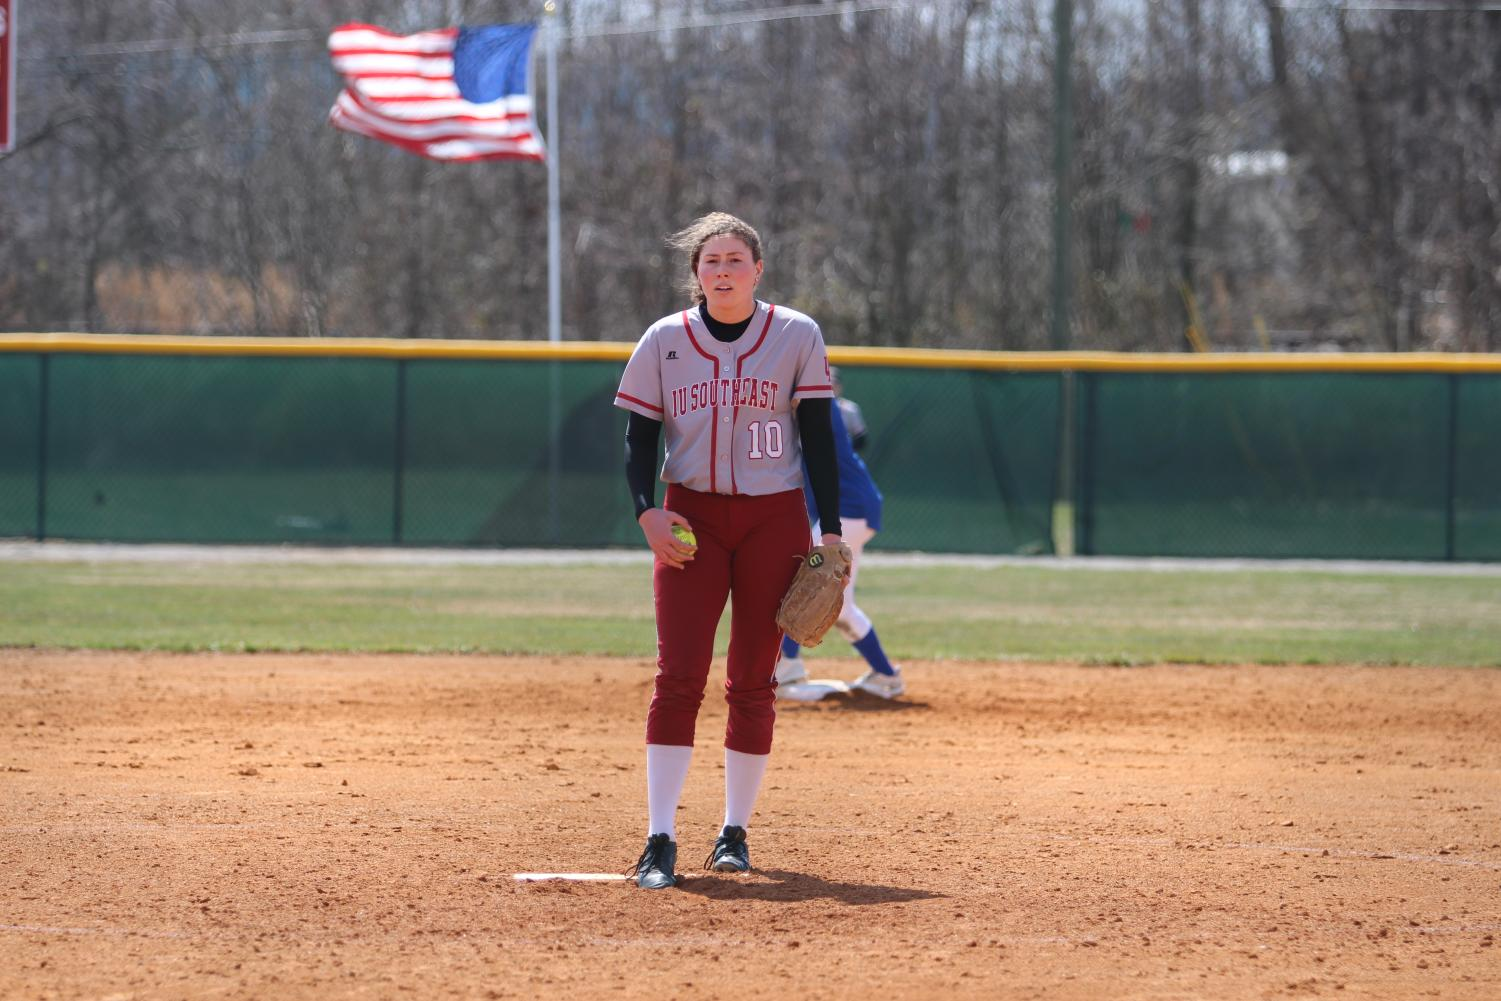 Pitcher Becca Schoenung looks for the sign from catcher Reecie Gilliam in game one of last Friday's doubleheader versus Midway University.